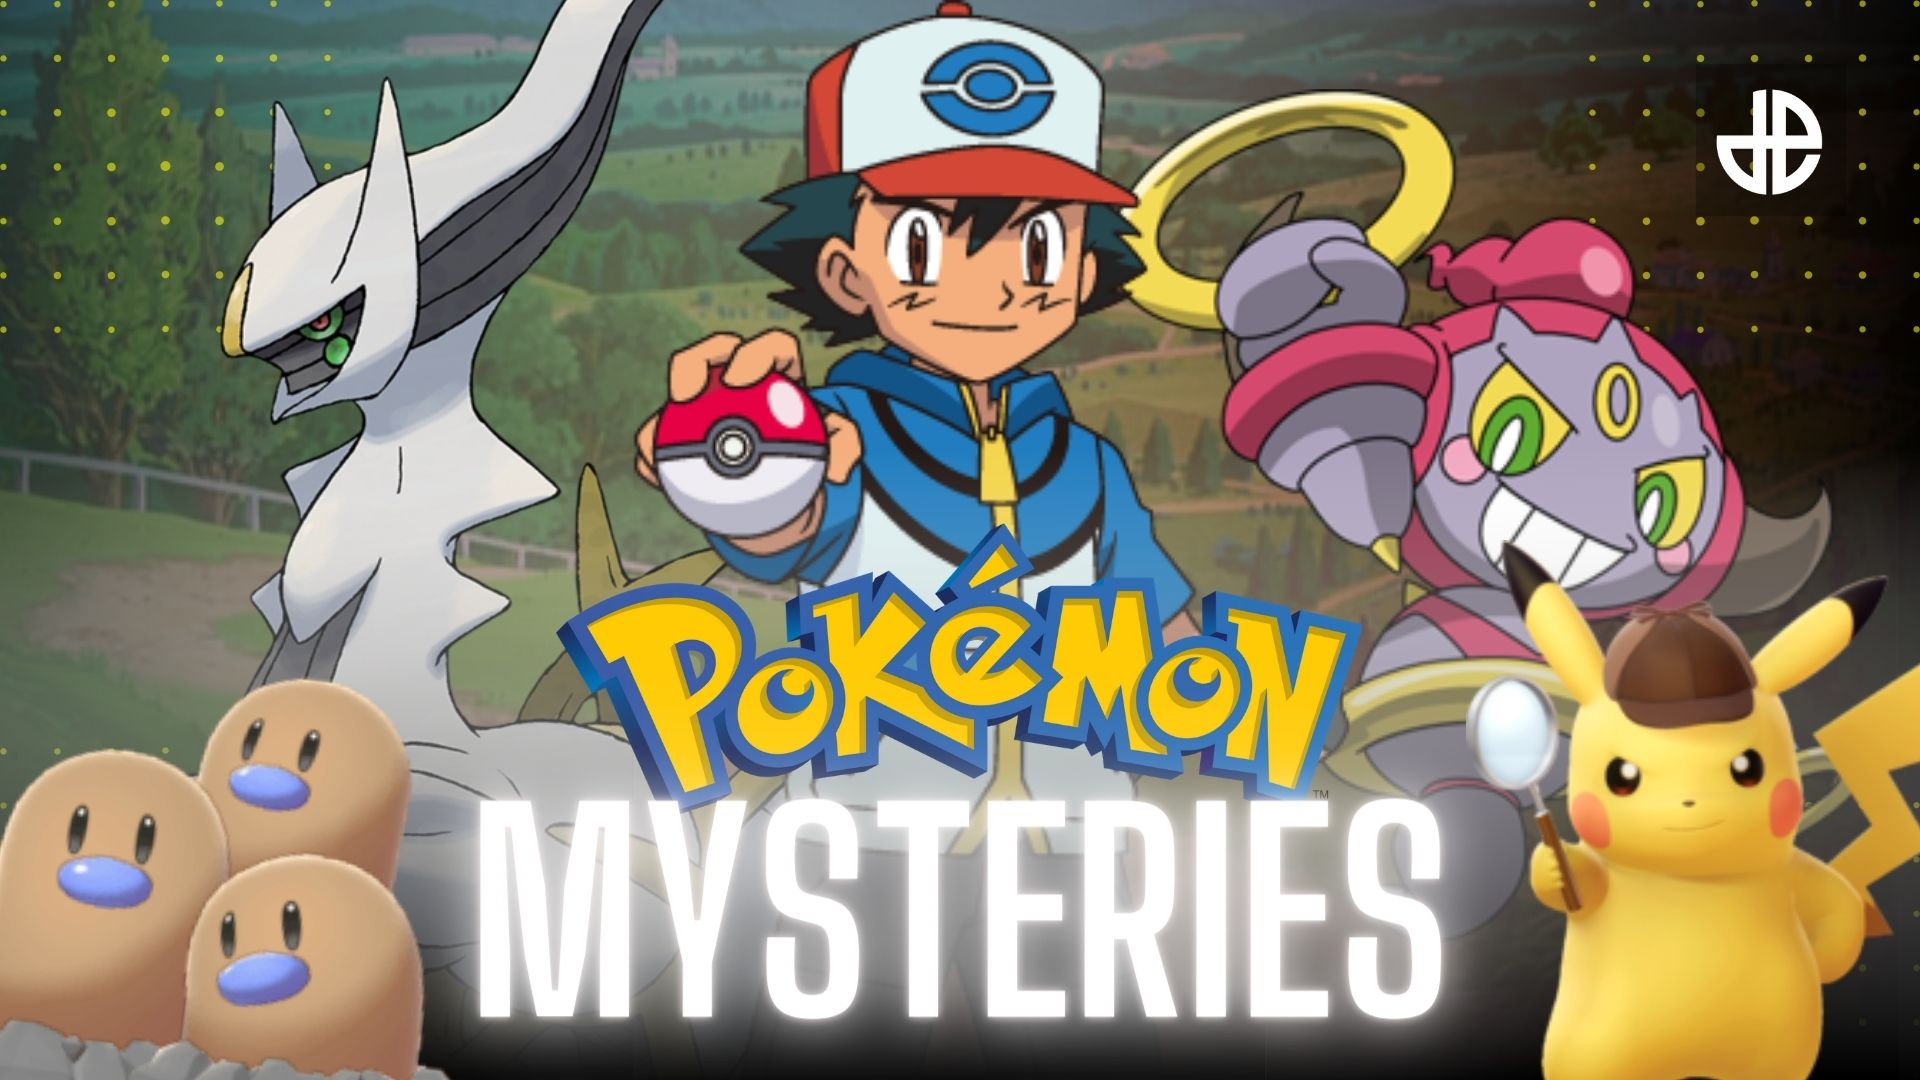 Pokemon mysteries image with Ash, Pikachu, Dugtrio, and more